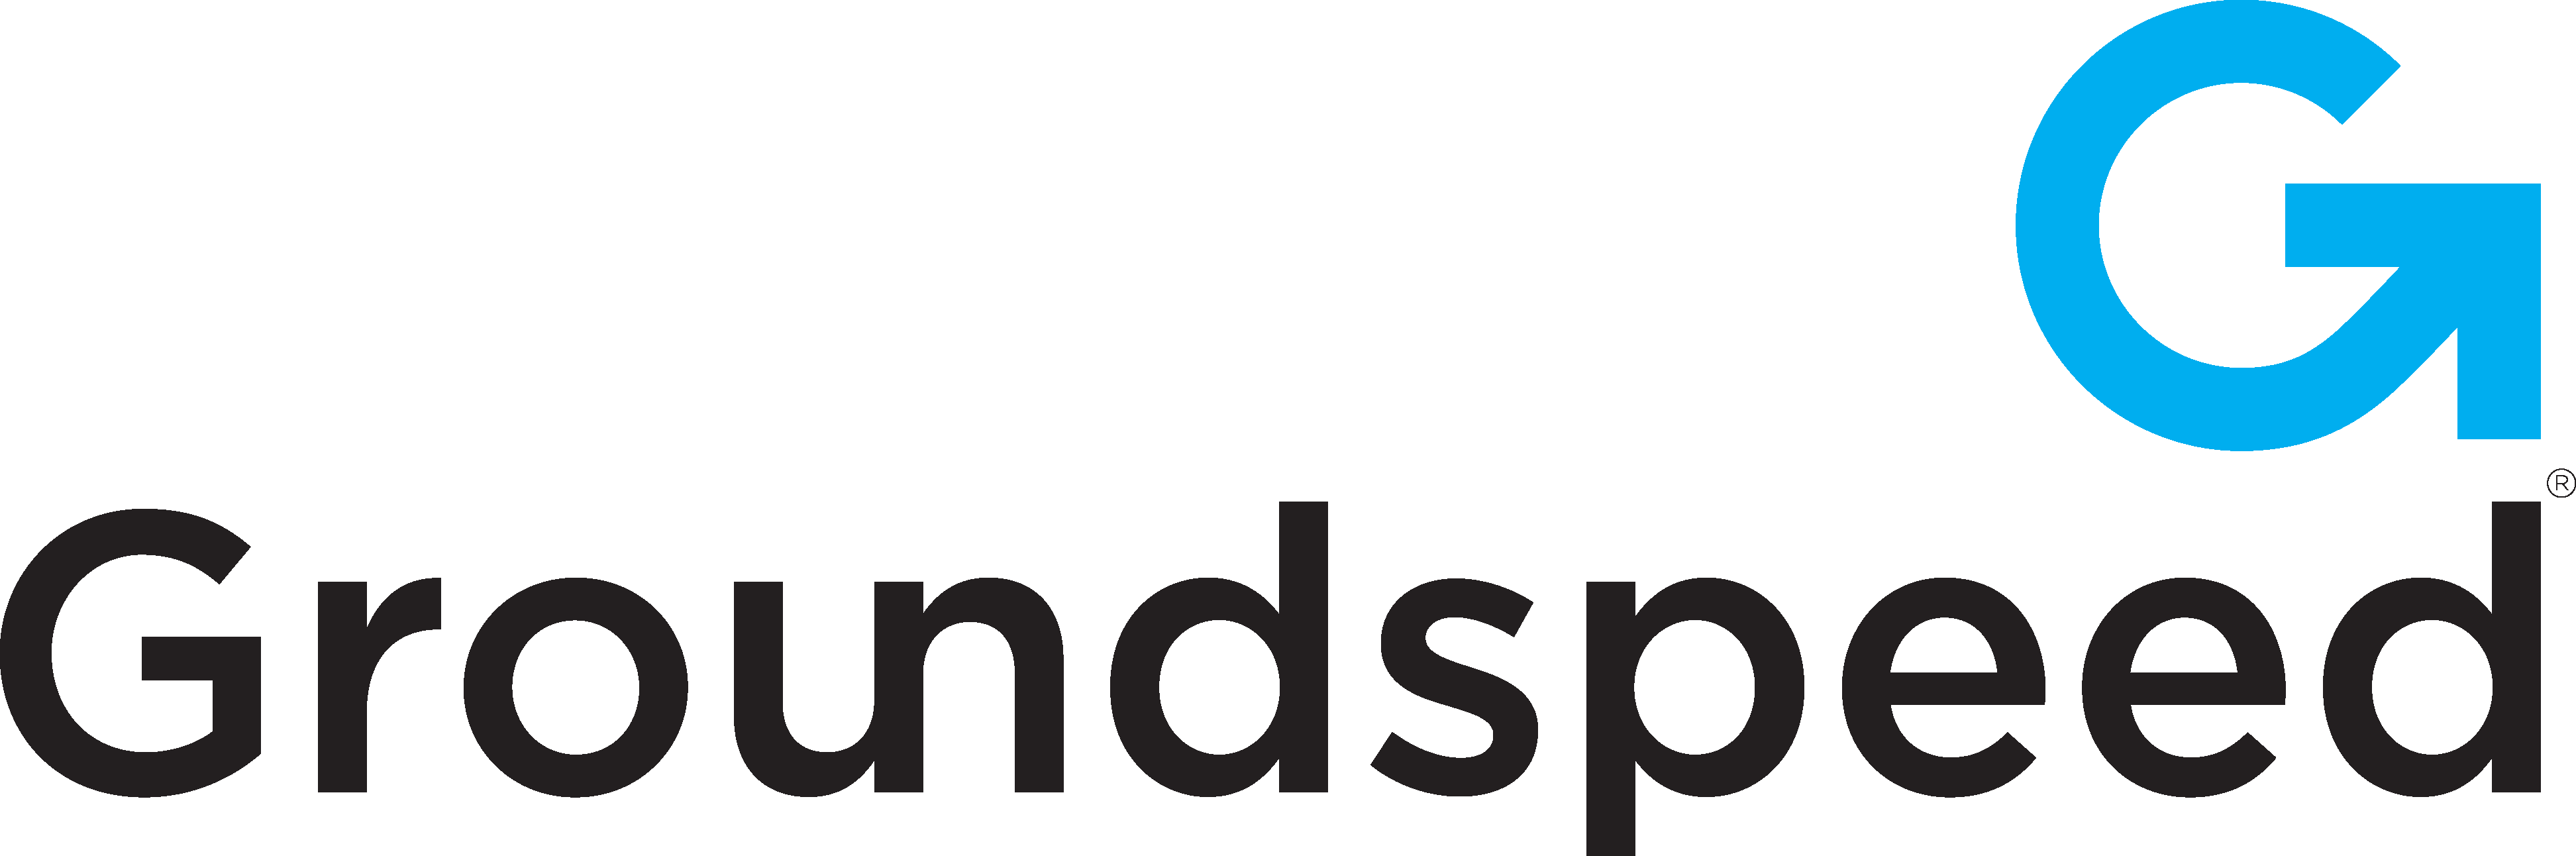 Groundspeed Analytics, Inc. logo